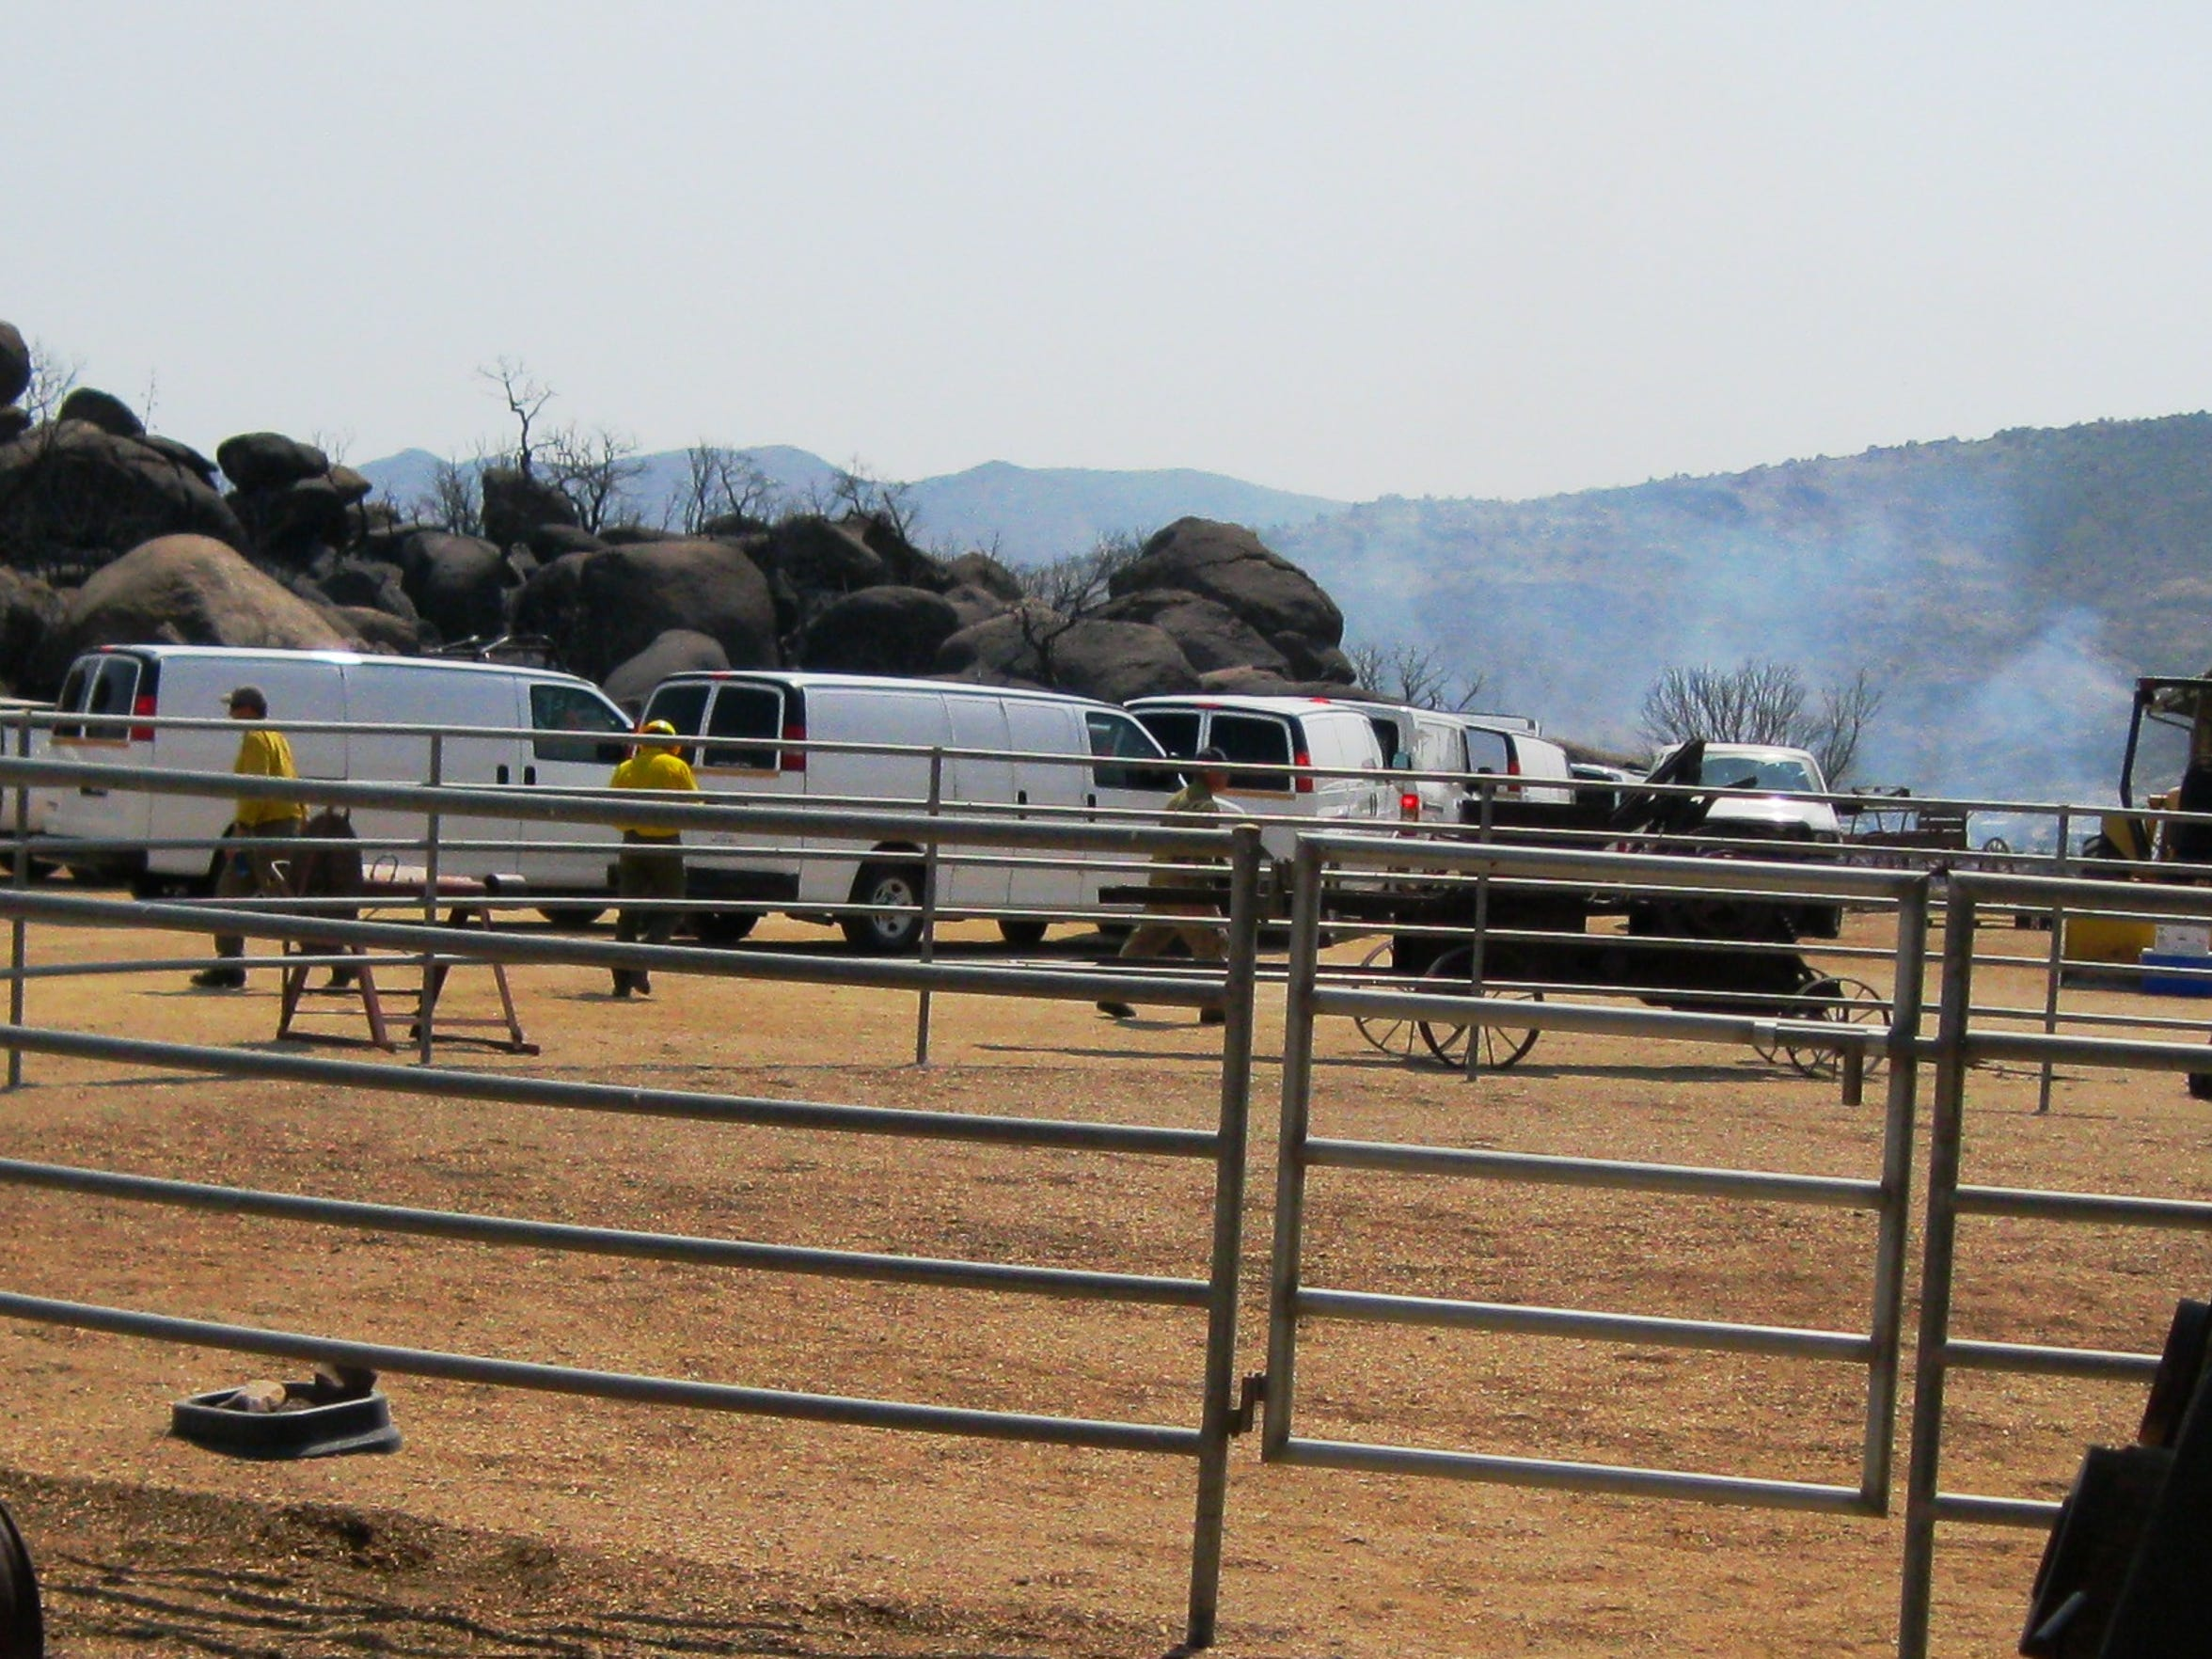 The last of the 10 coroner vans leave the Helm's ranch